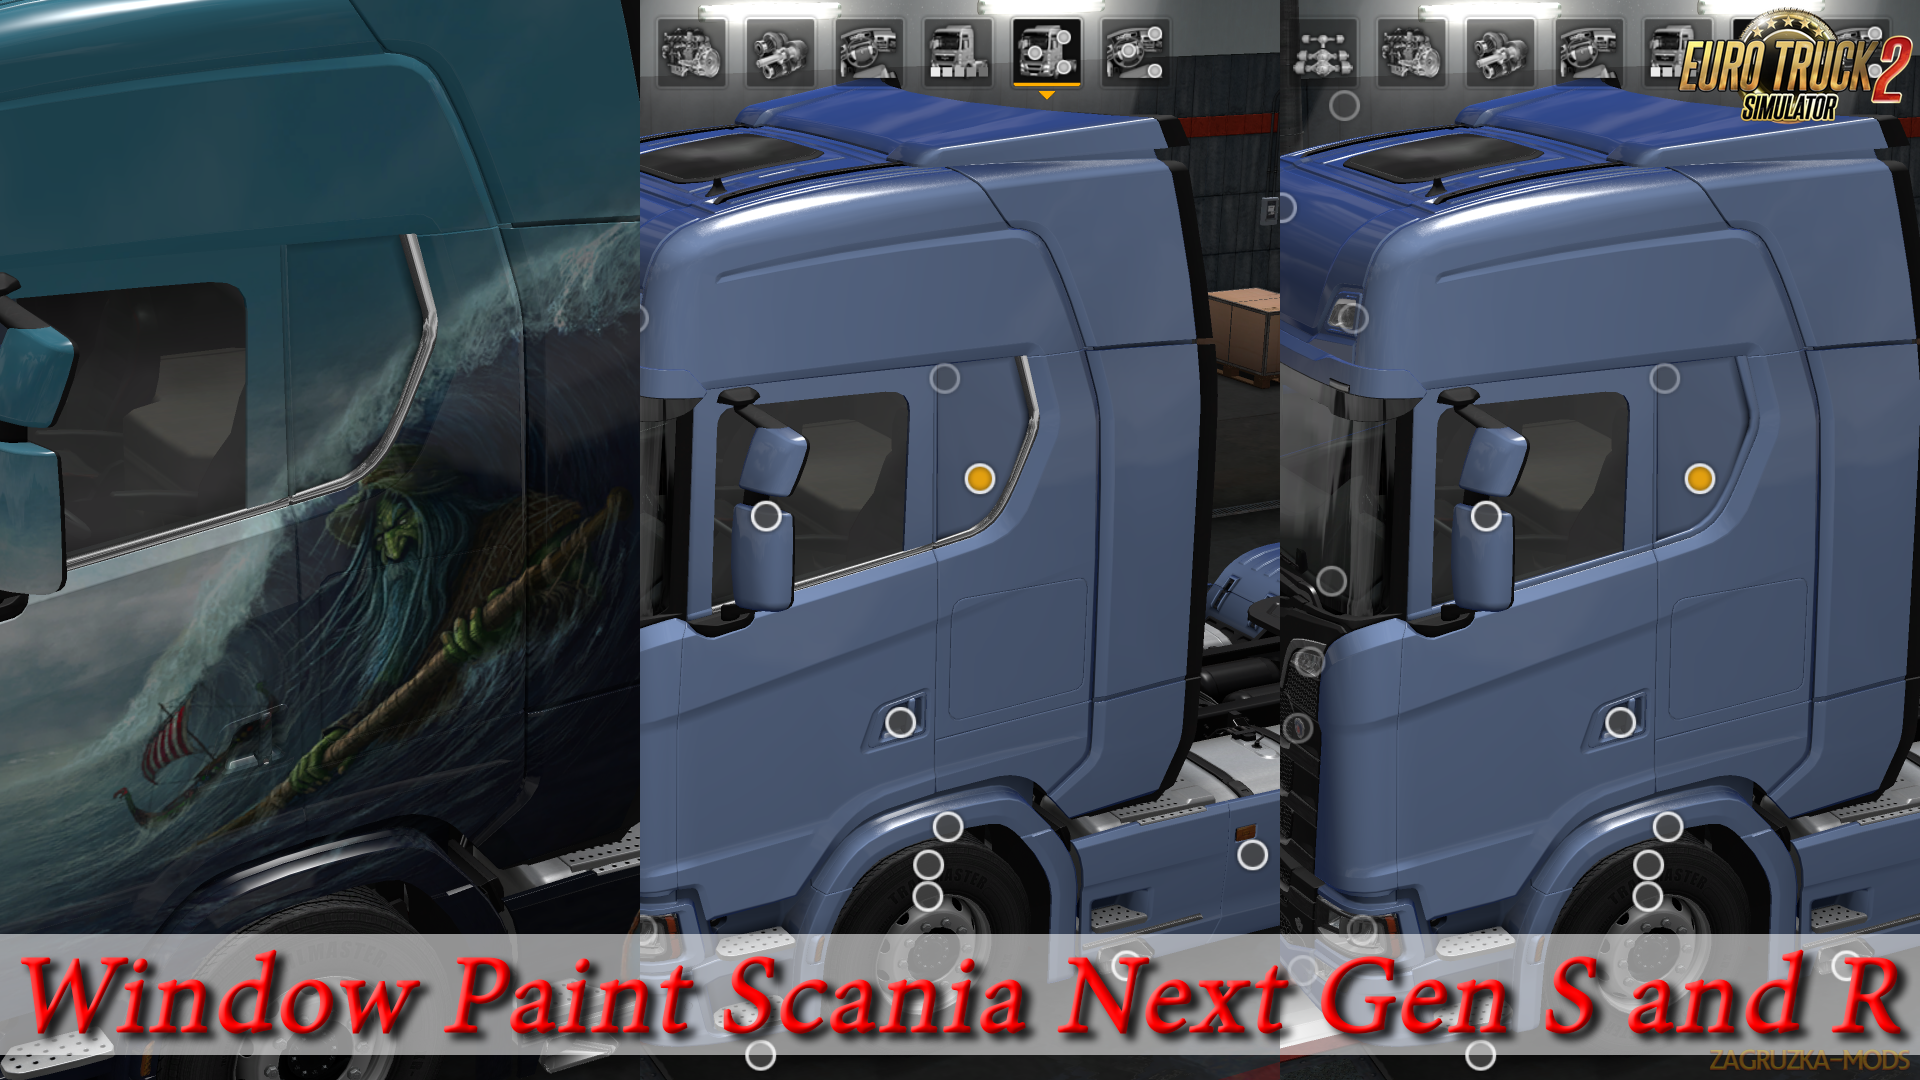 Window Paint and Glass Scania Next Gen v1.0 [1.30]